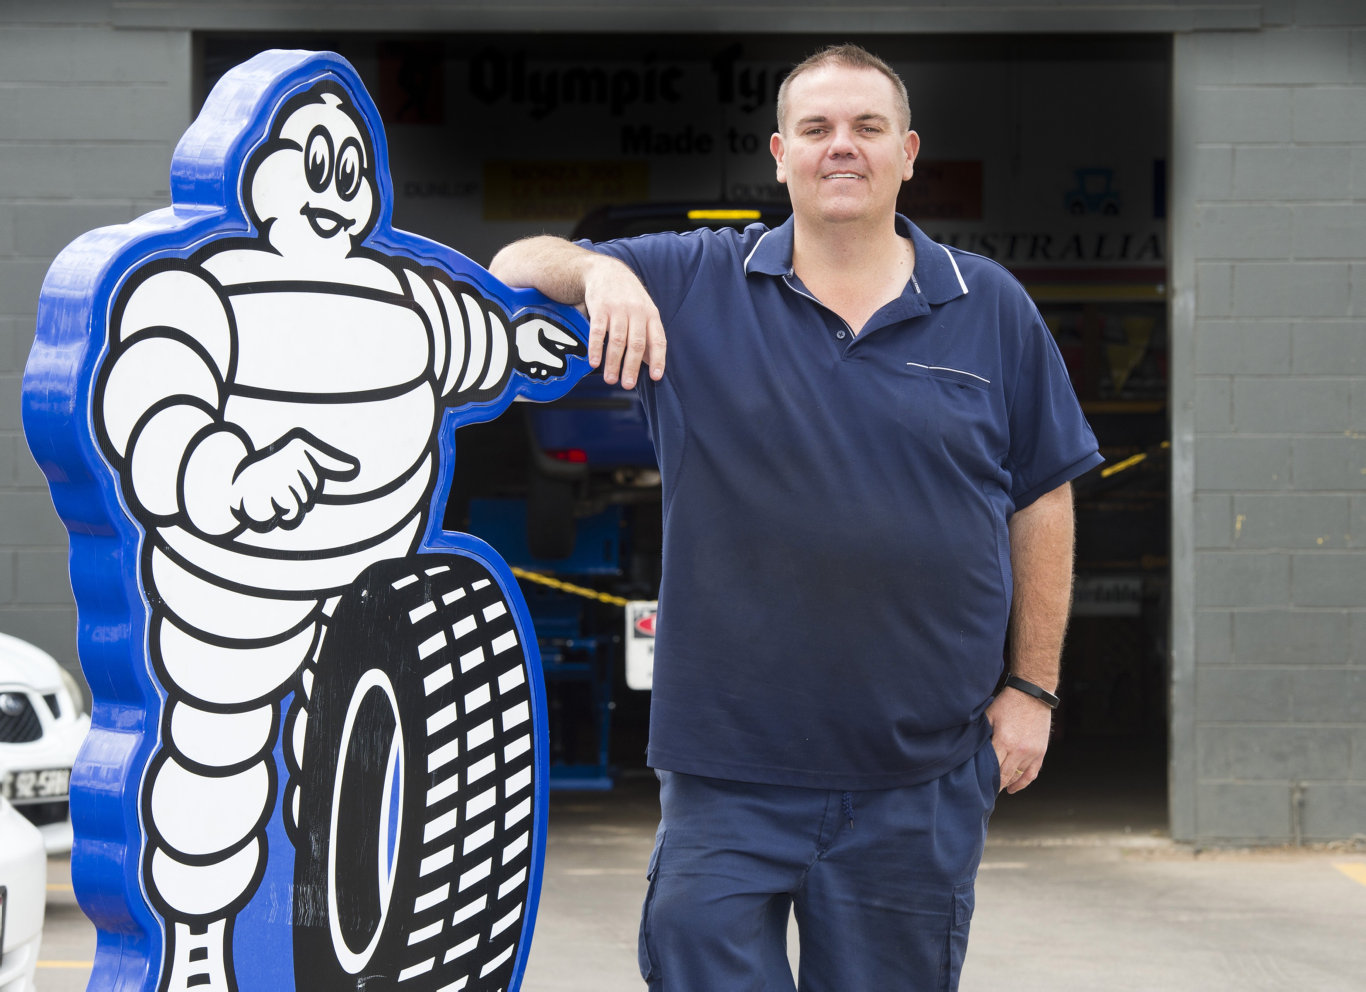 Local tyre retailer Chris Liebke has undergone a surgical weight-loss procedure and is feeling more active. Wednesday, 26th Sep, 2018.